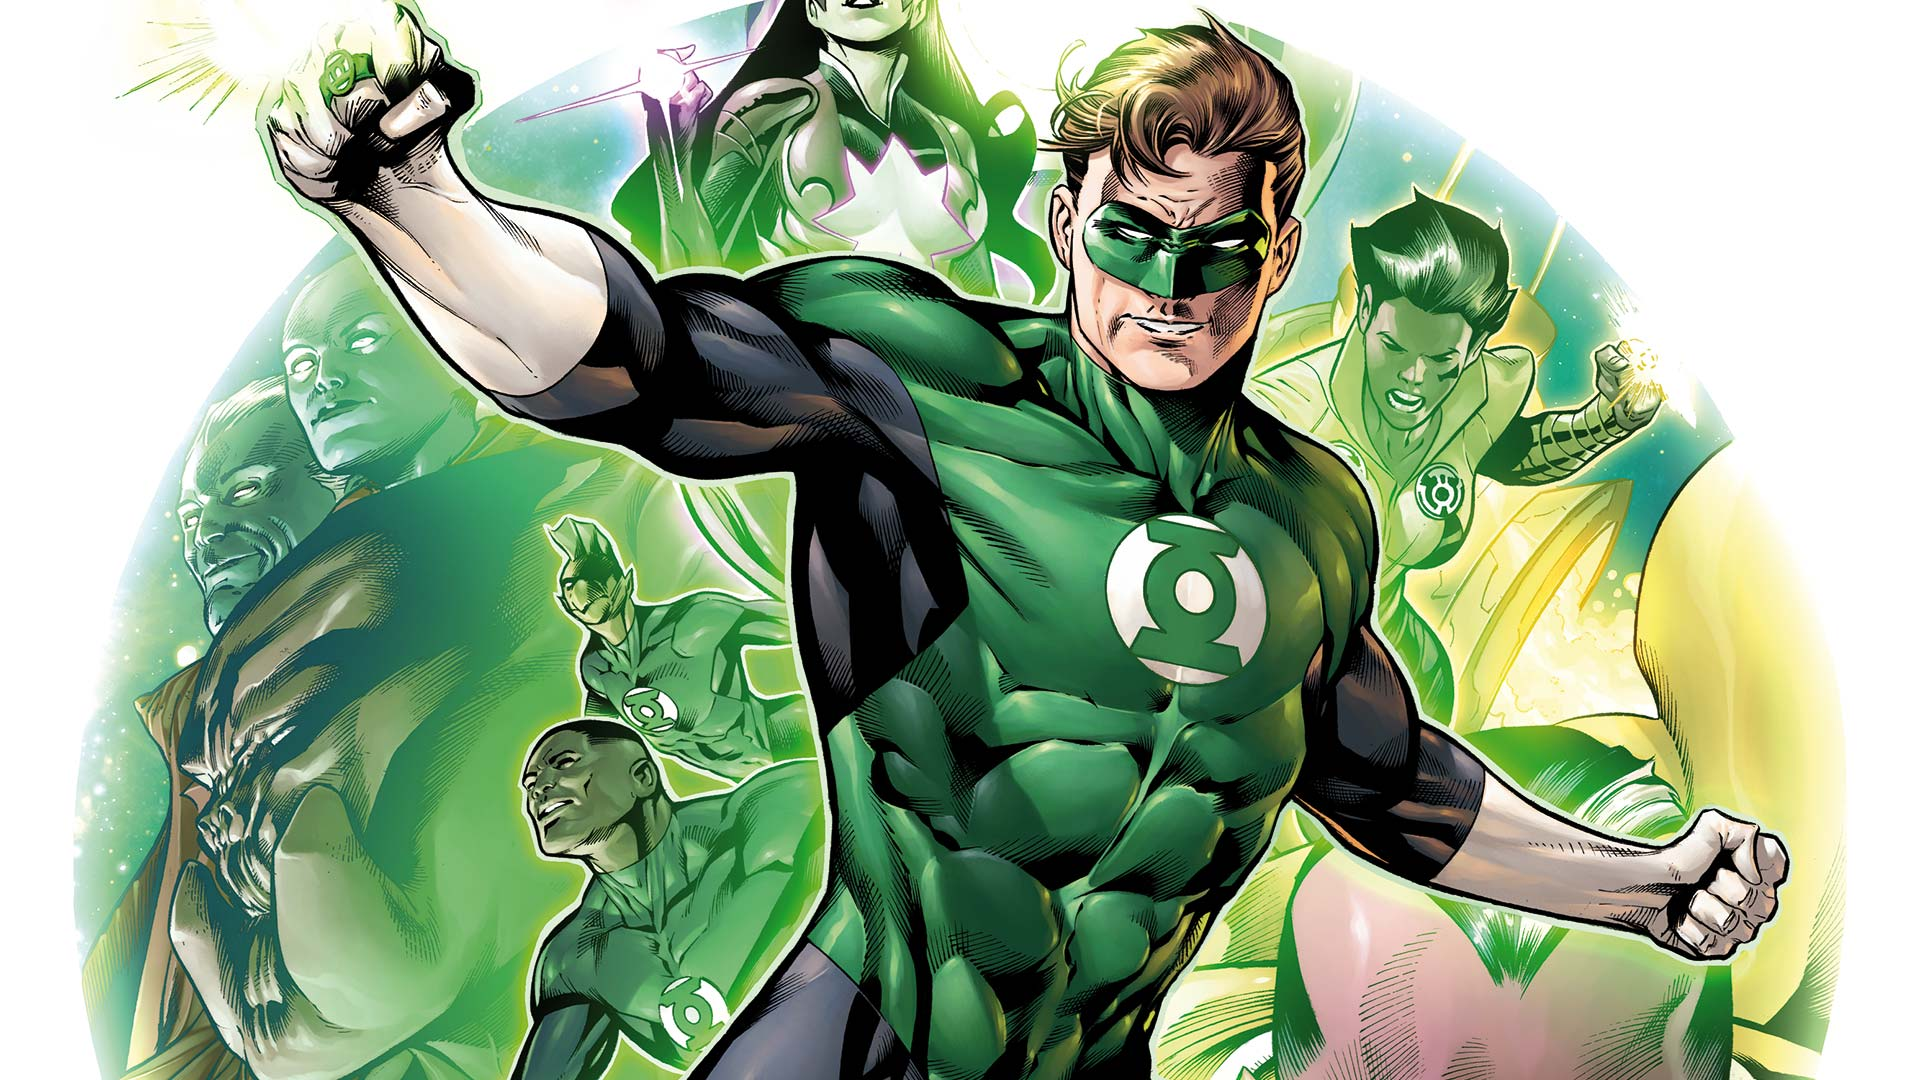 [New York Comic Con 2016] - Interview with Robert Venditti, writer of 'Hal Jordan and the Green Lantern Corps'